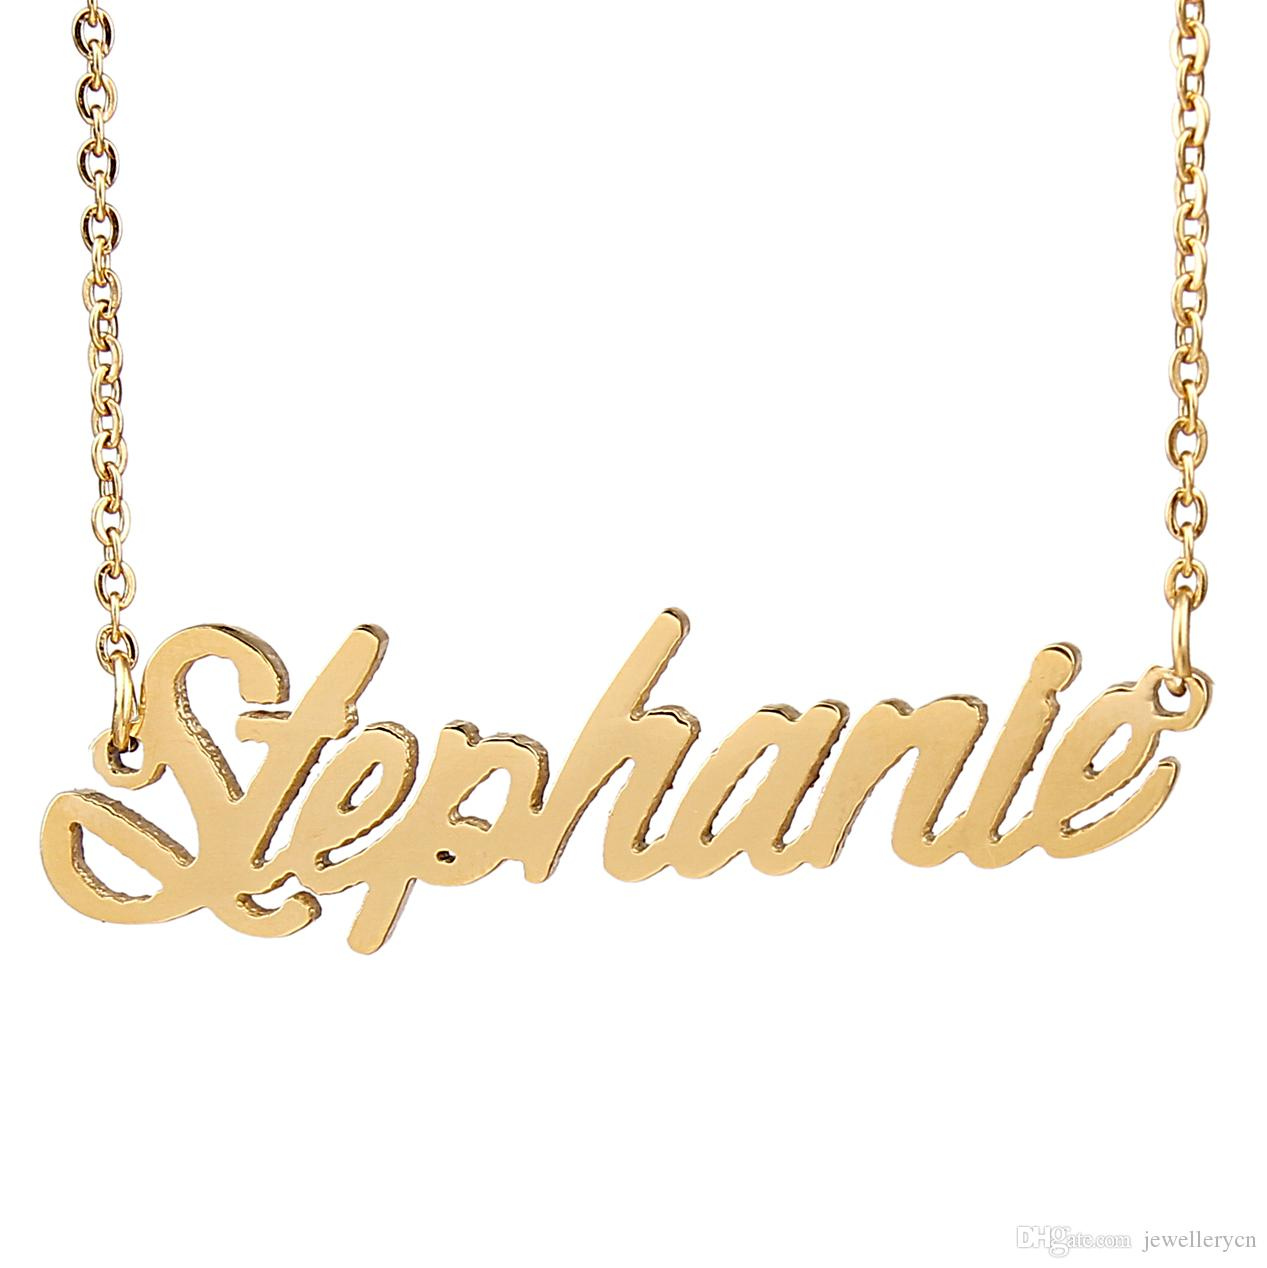 878c9a6167c76 Personalized custom 18K Gold Plated Stainless Steel Script Name necklace  Stephanie Charm Nameplate Necklace Jewelry gift NL-2430